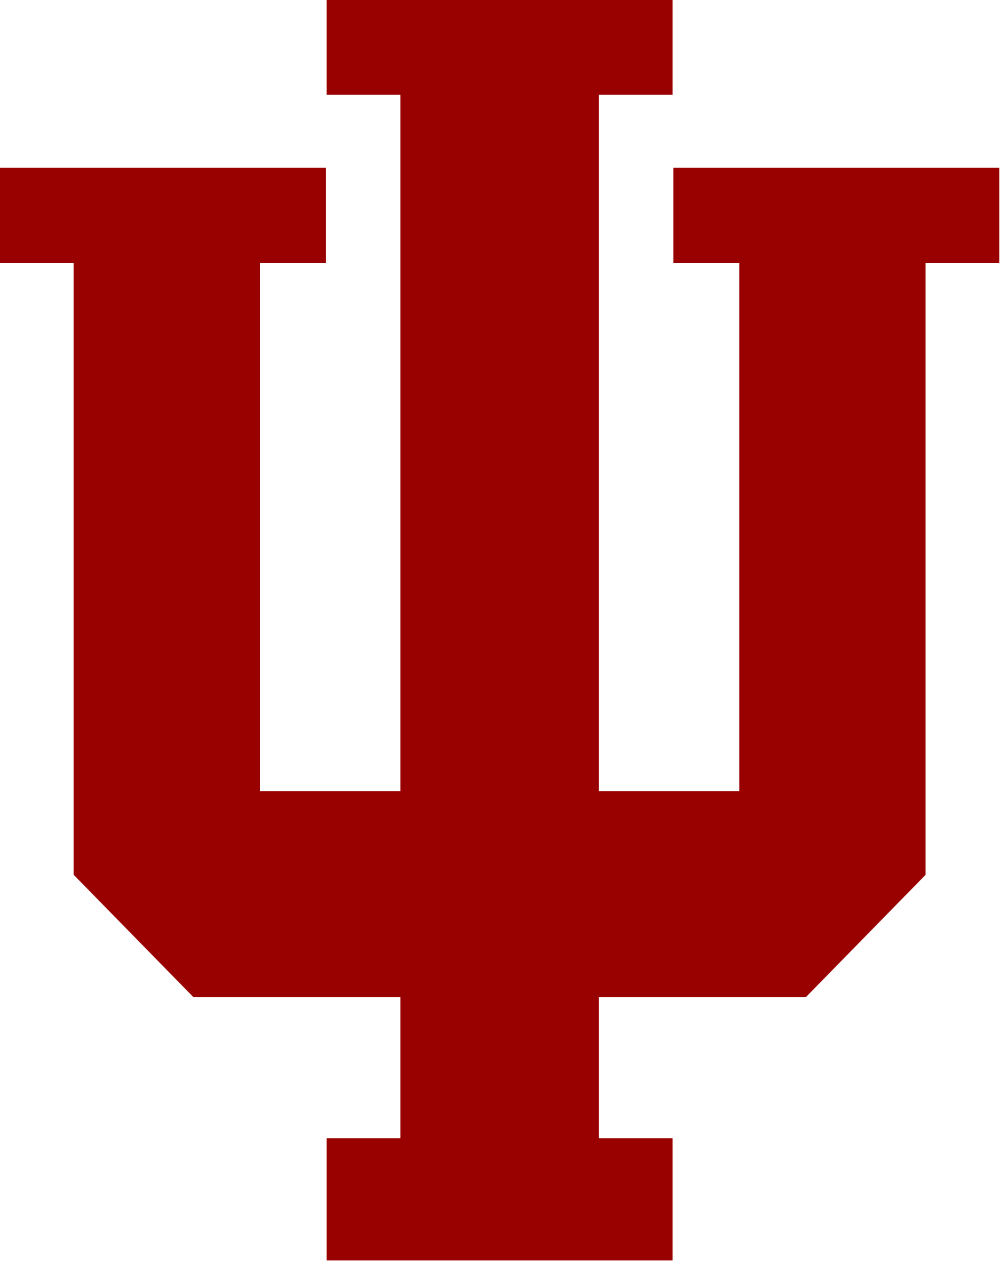 Collaborator: Indiana University